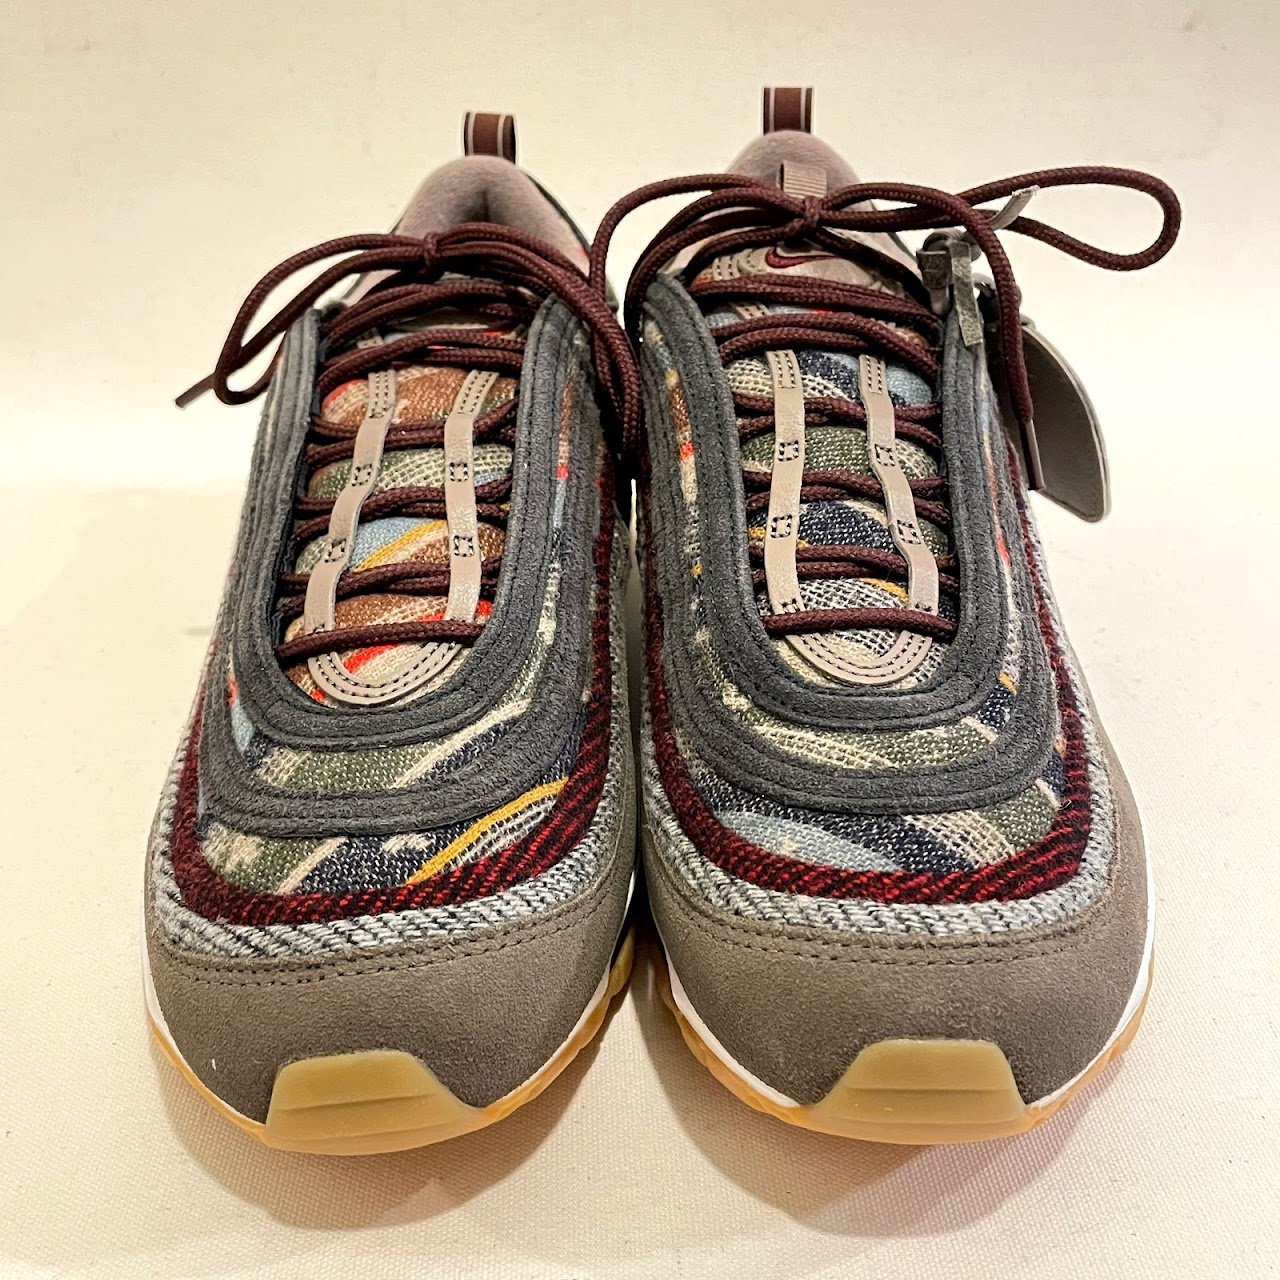 Nike NEW 'By You' Air Max X Pendleton Sneakers